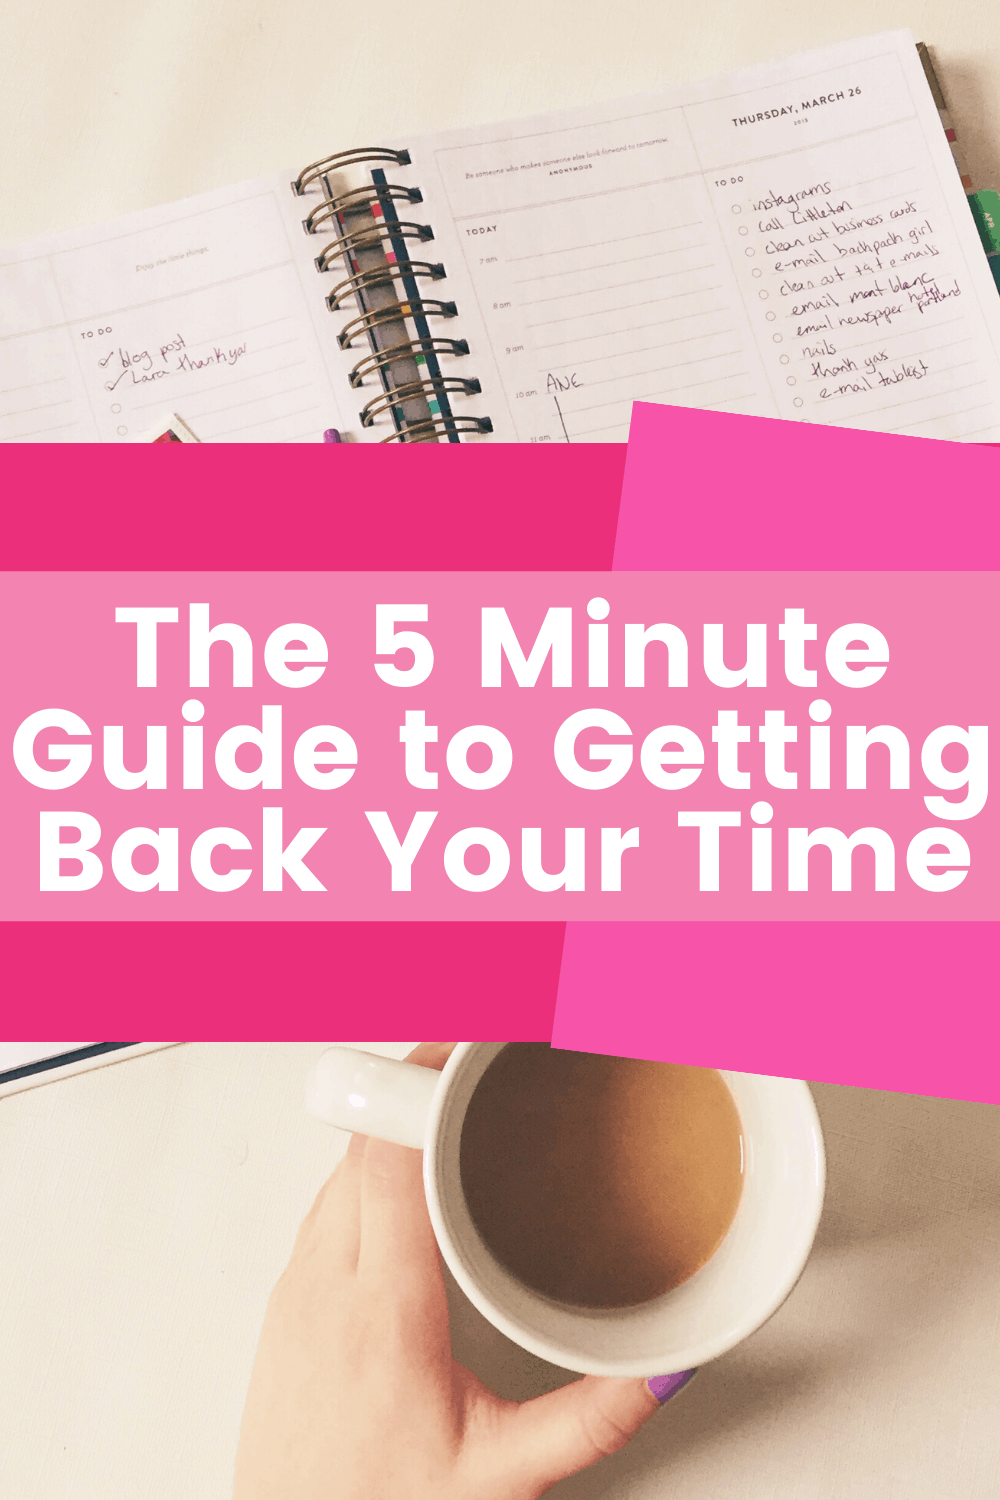 The Five Minute Guide to Organizing Your Mind for Less Mental Clutter 1